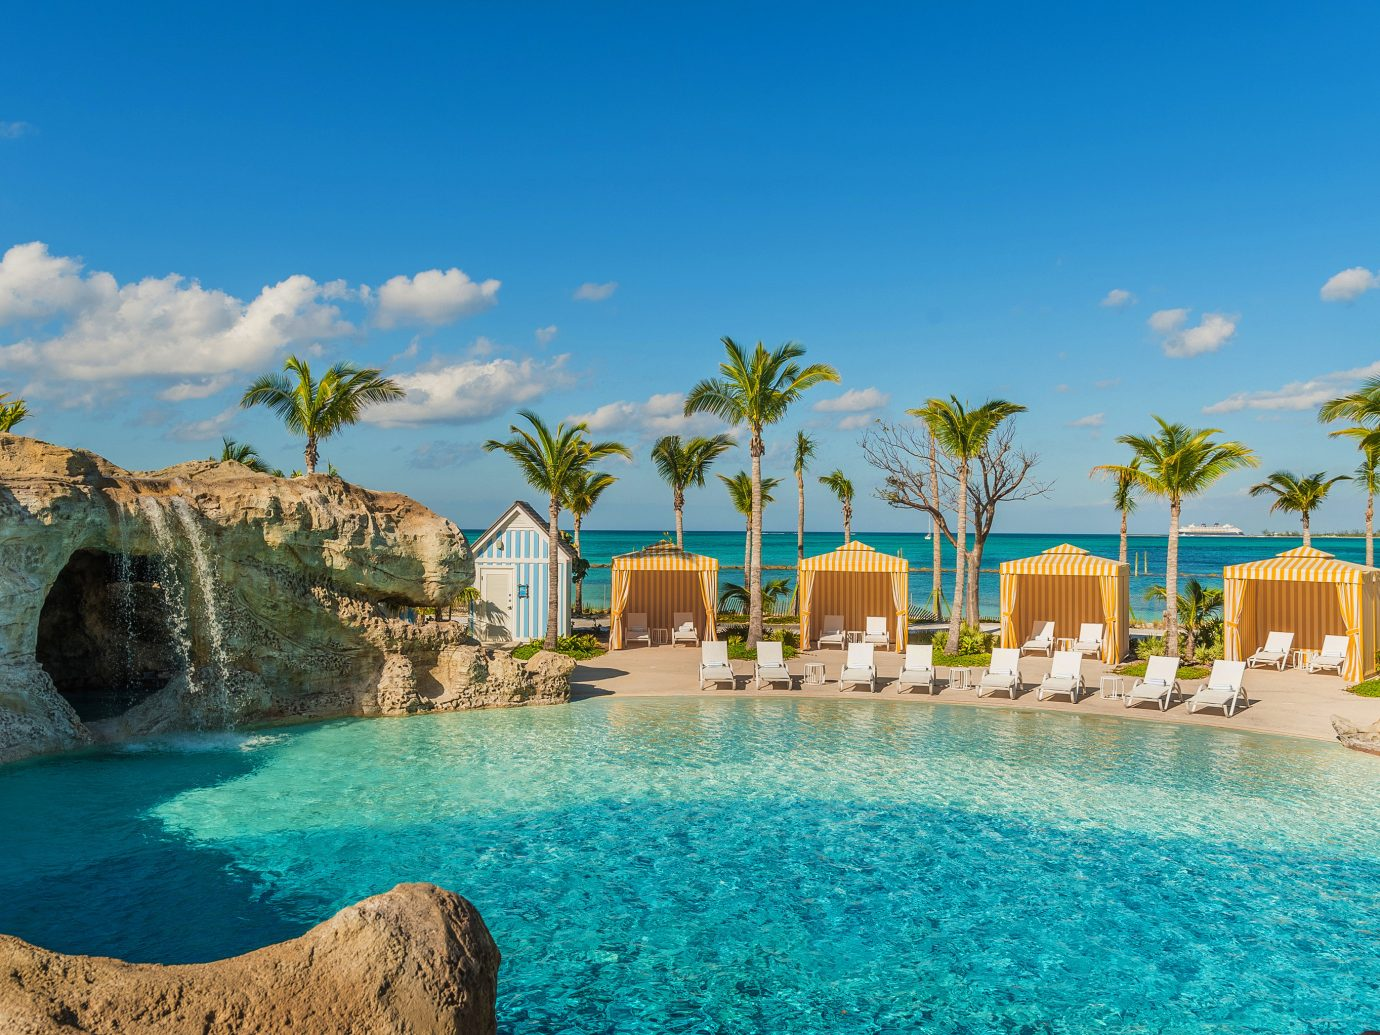 Boutique Hotels Hotels Luxury Travel Resort water swimming pool palm tree arecales leisure sky tree tropics resort town Nature vacation Sea tourism caribbean Lagoon real estate estate Pool water feature bay blue swimming day